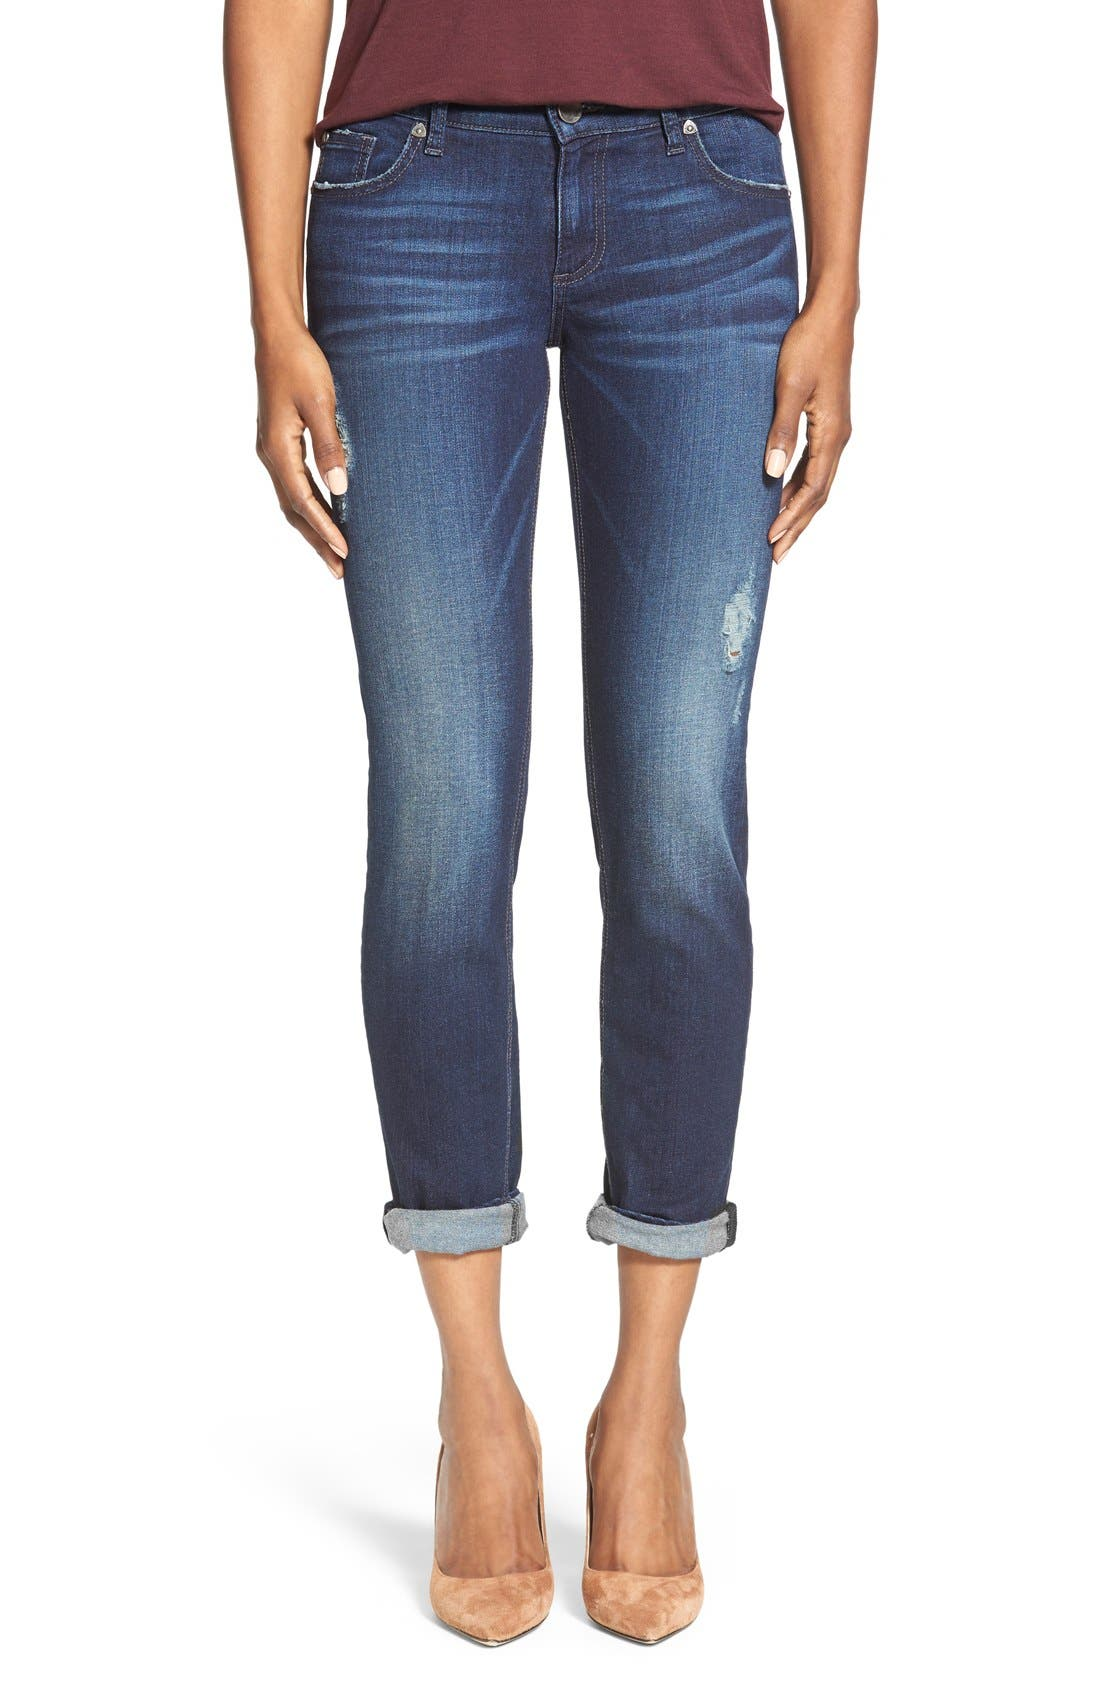 Main Image - KUT from the Kloth 'Catherine' Boyfriend Jeans (Luxury)